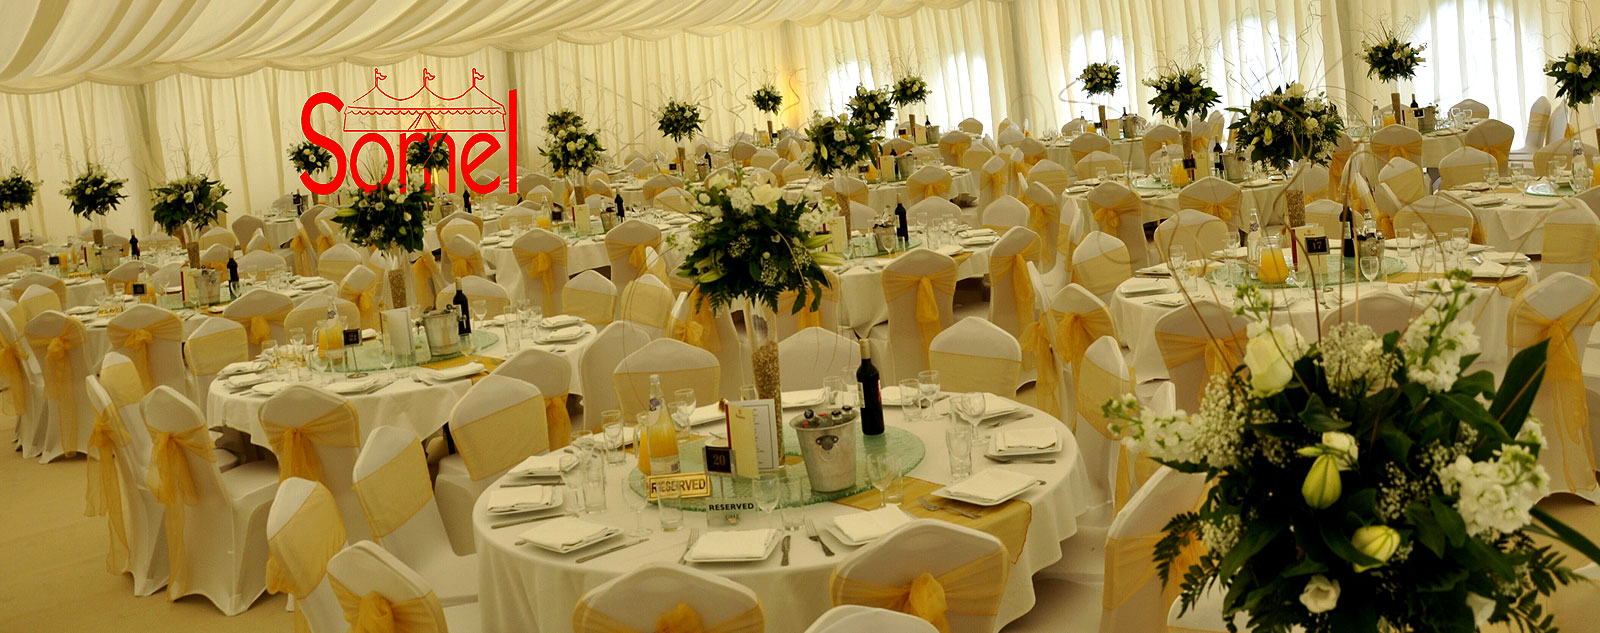 Somel Somel Tent And Marquee Services